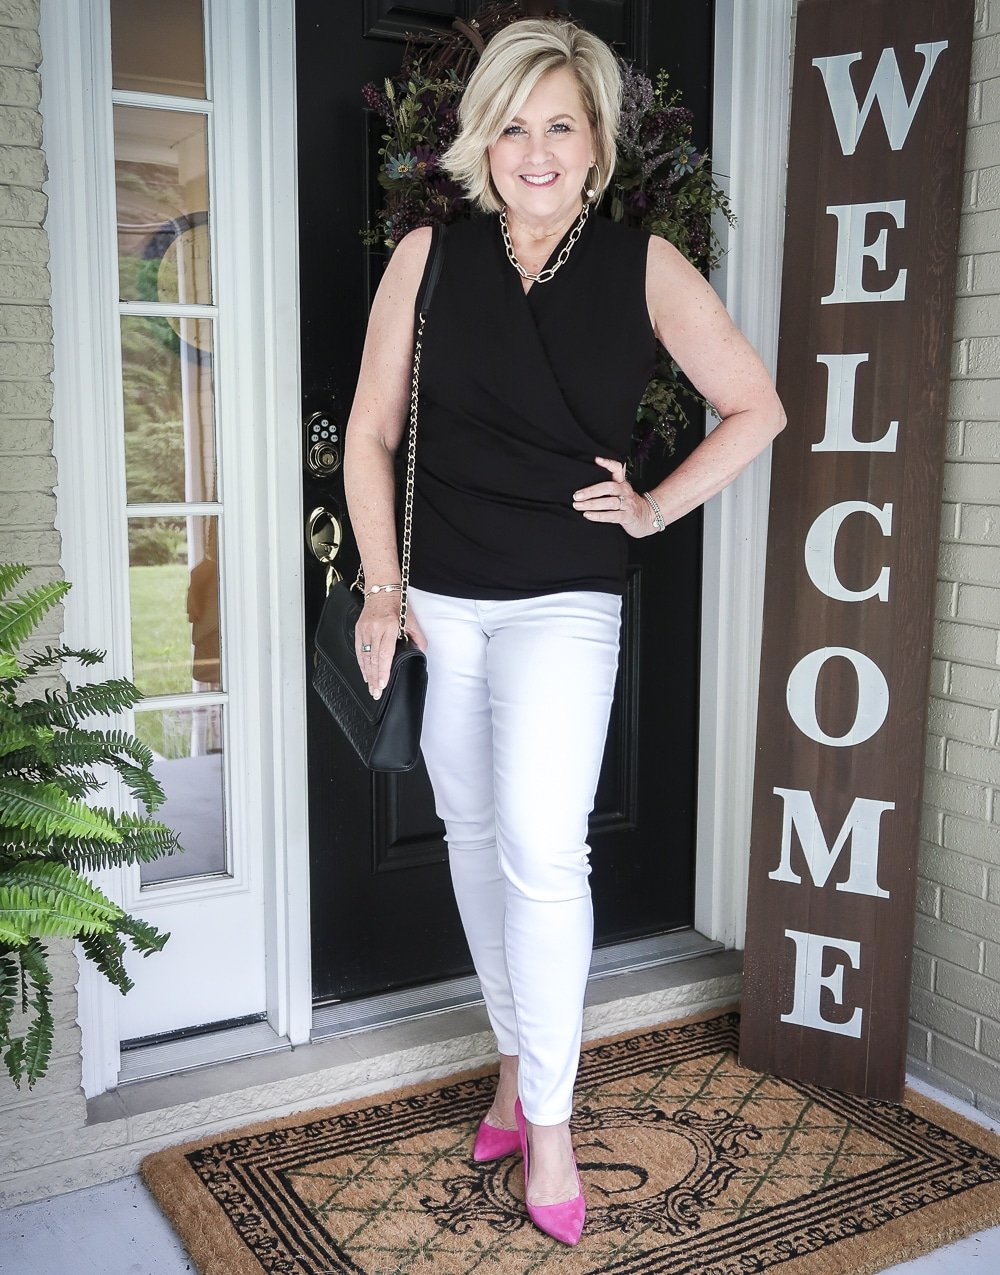 Fashion Blogger 50 Is Not old is wearing a black faux wrap top with white No Stain jeggings, hot pink pumps and carrying a black shoulder bag